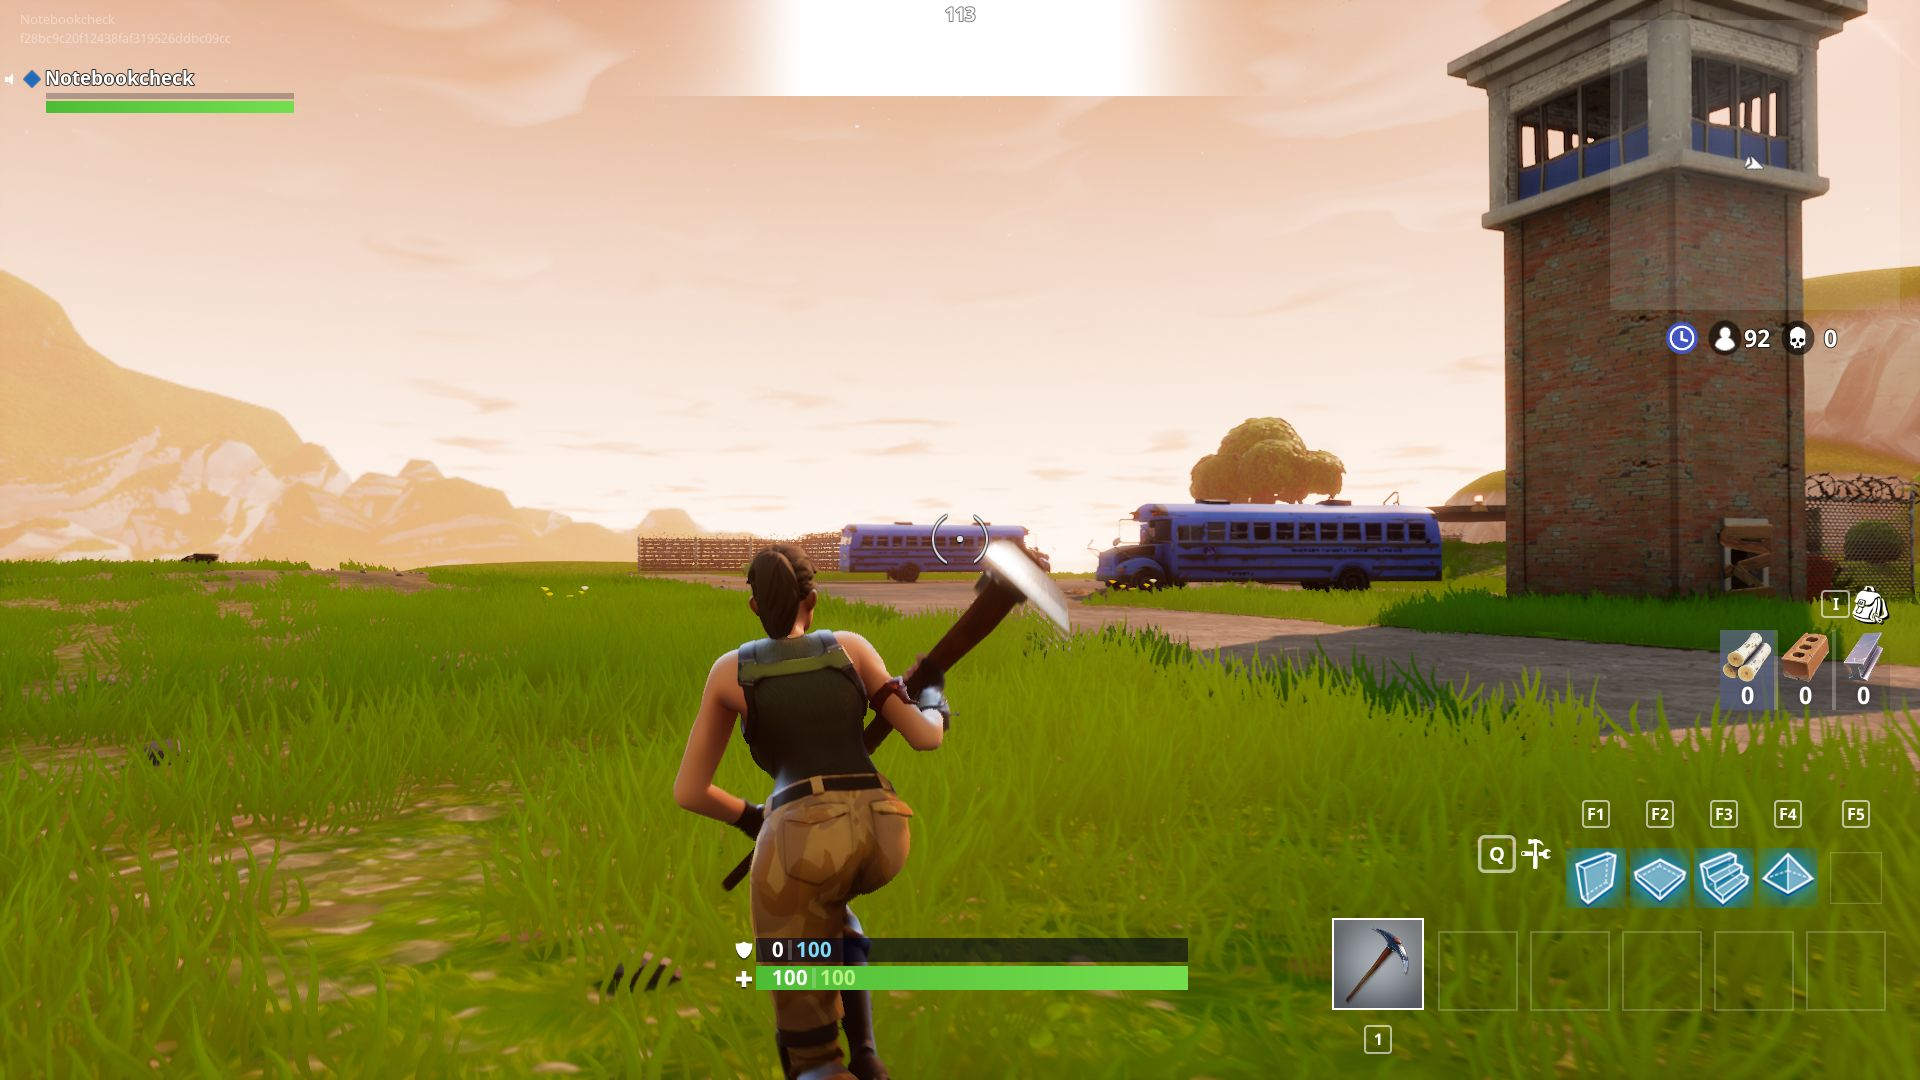 how to change the resolution on fortnite in file explorere